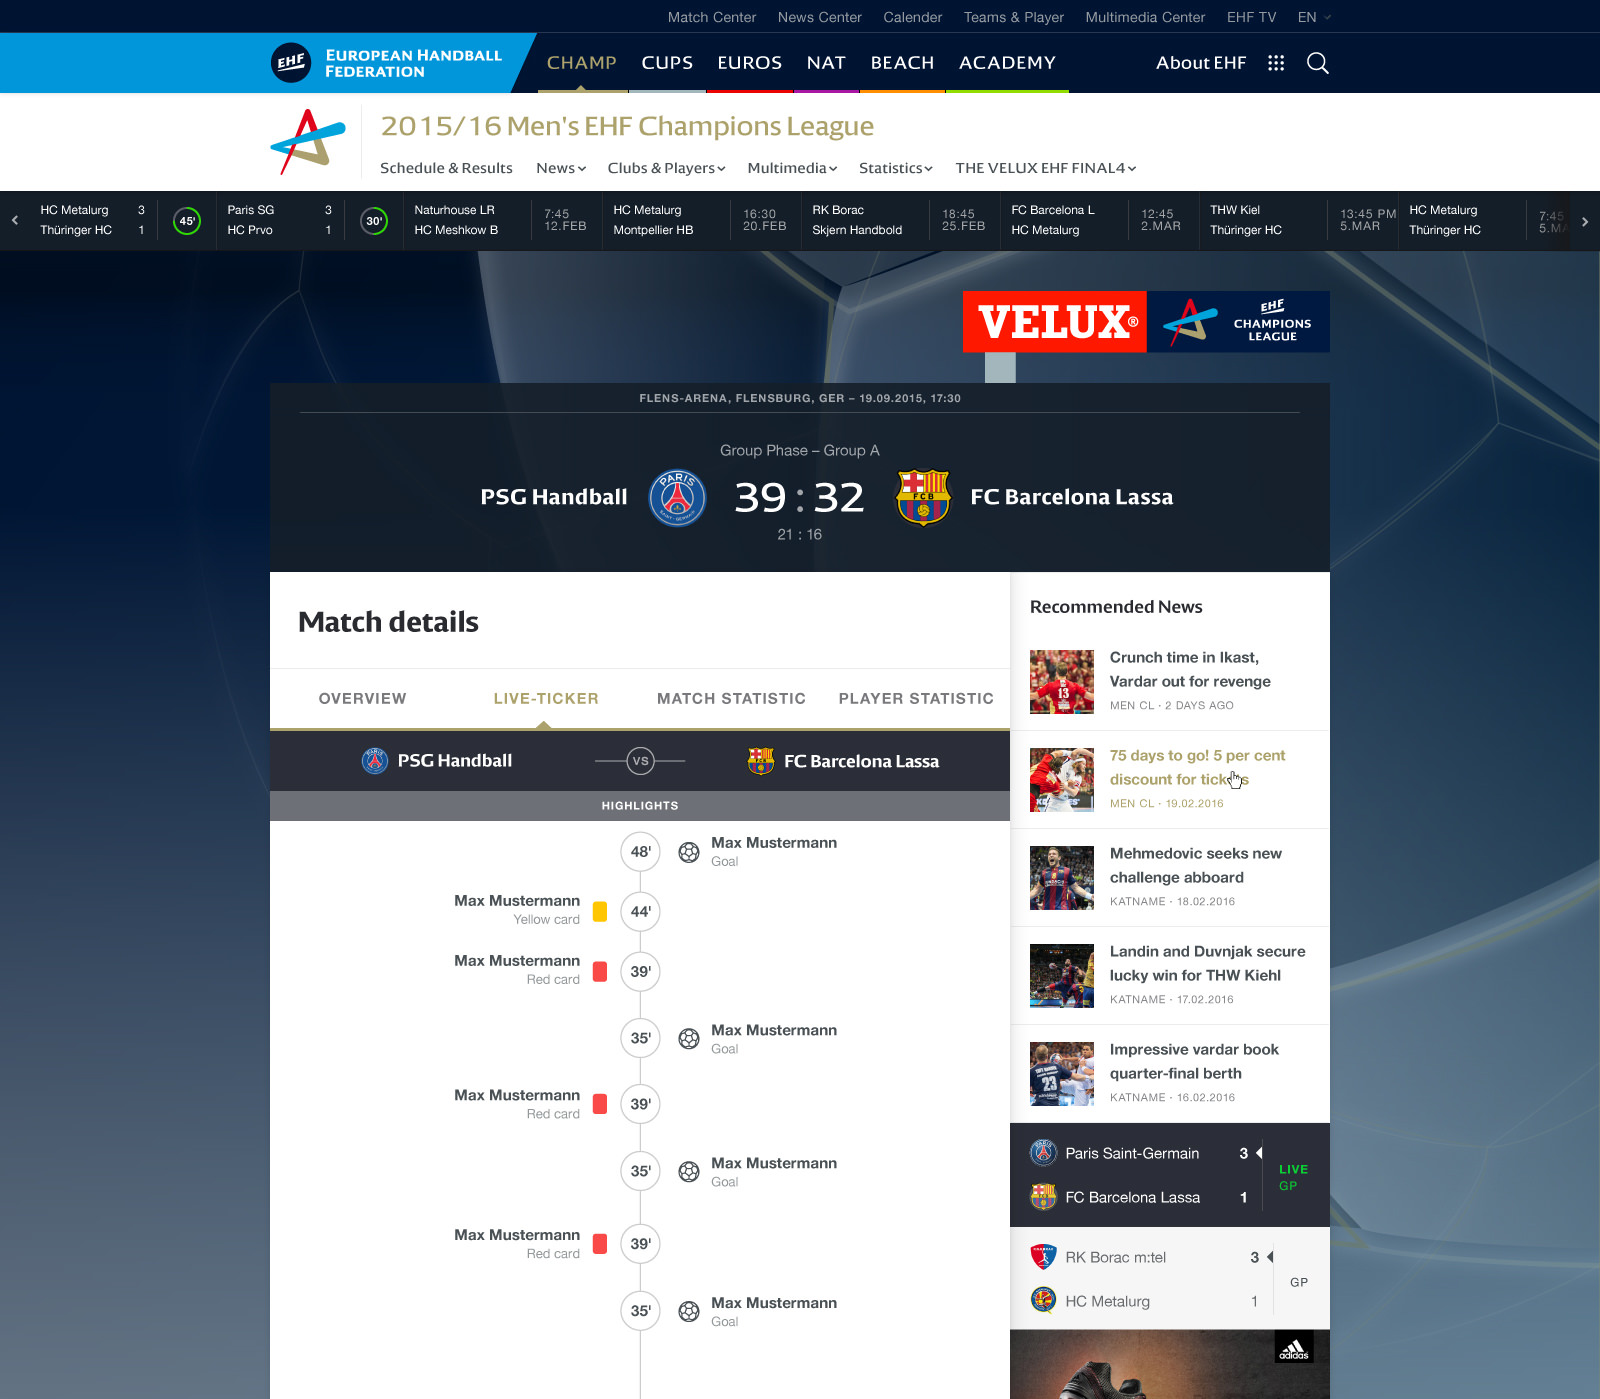 EHF European Handball Federation Website Design player profile matchdetails match-live-ticker